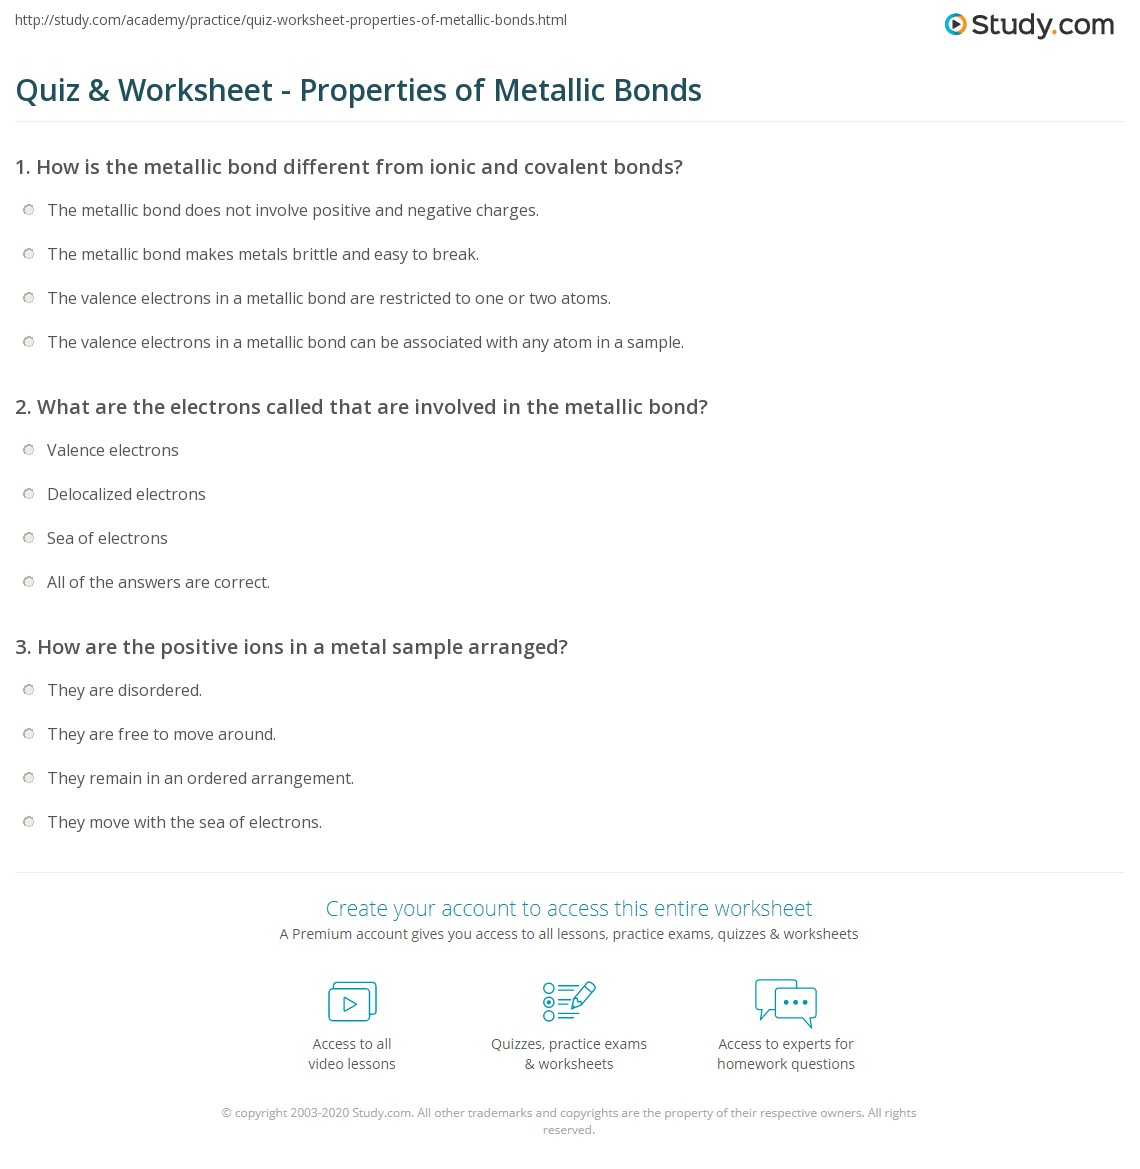 Ionic Bonds Worksheet Chapter 19: Quiz & Worksheet   Properties of Metallic Bonds   Study com,